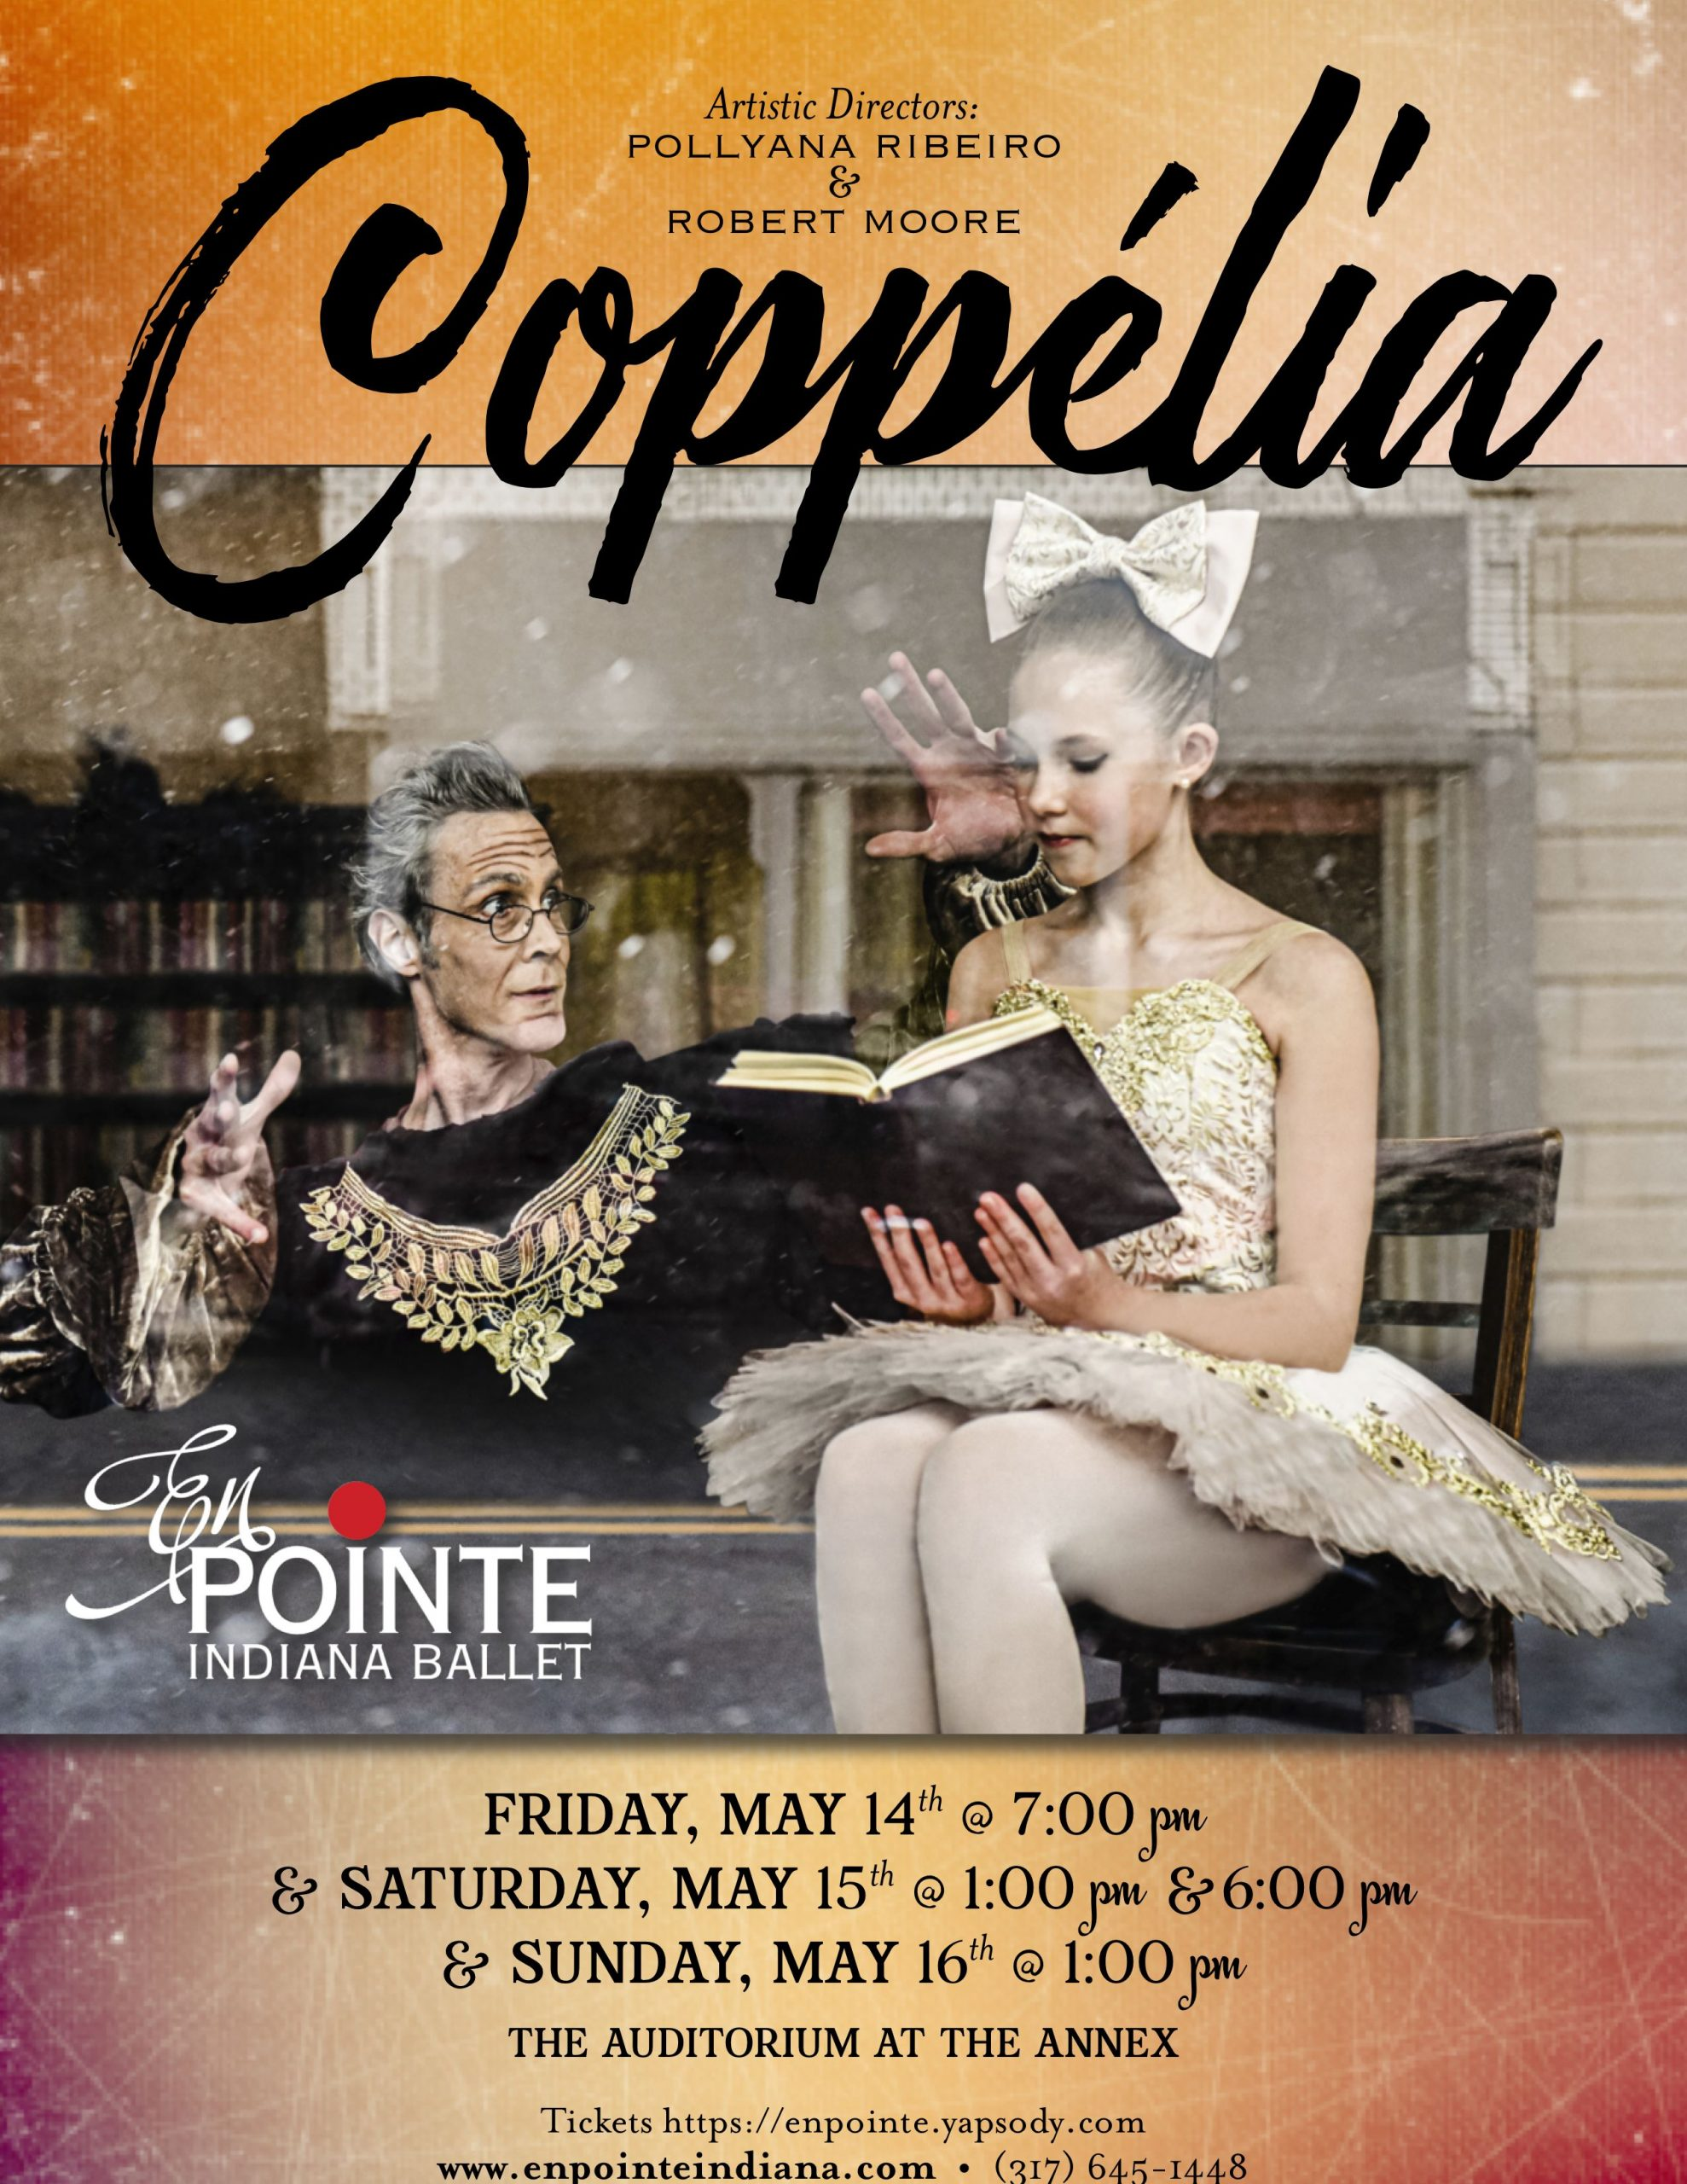 Coppelia En Pointe Indiana Ballet in Noblesville